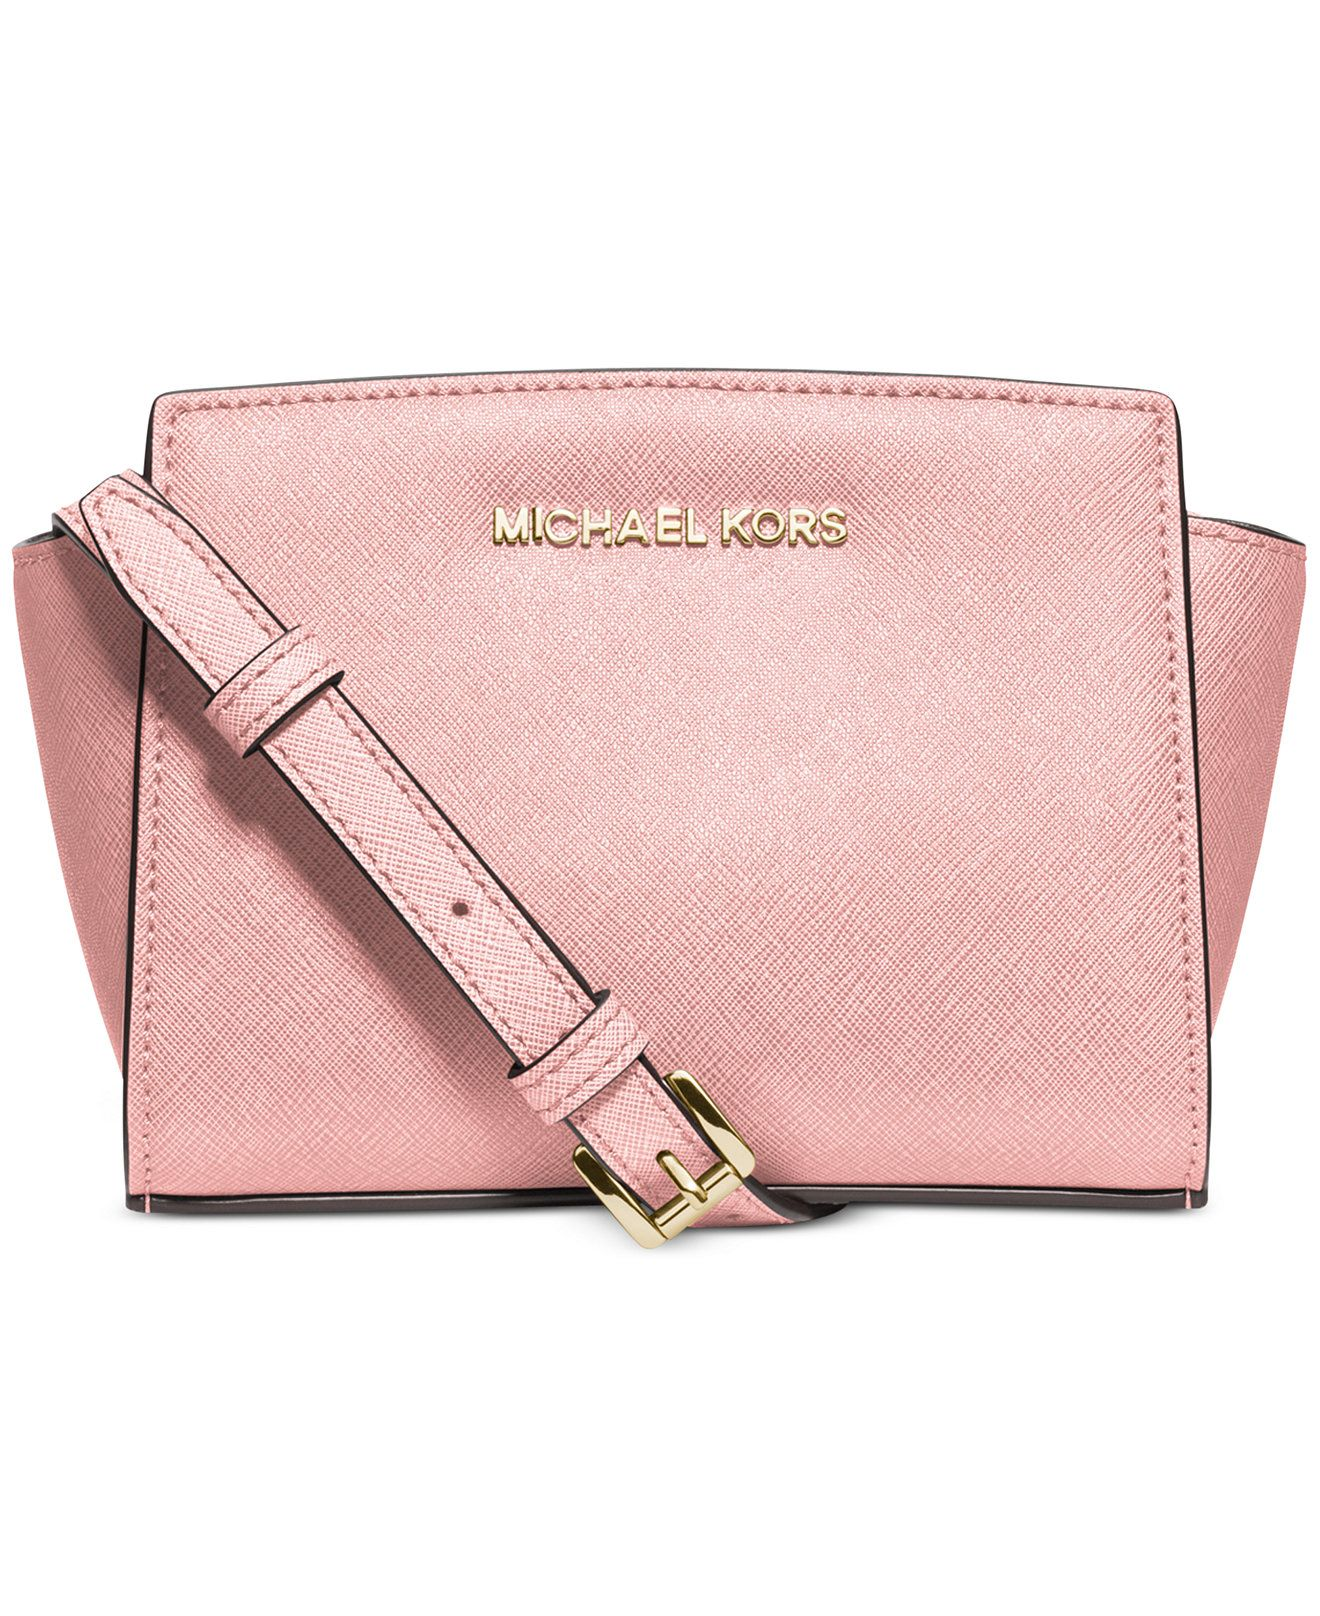 MK Selma Mini Messenger: Mini bags are on trend this season! This bag not  only is on trend but is in a beautiful color for summer called blossom.